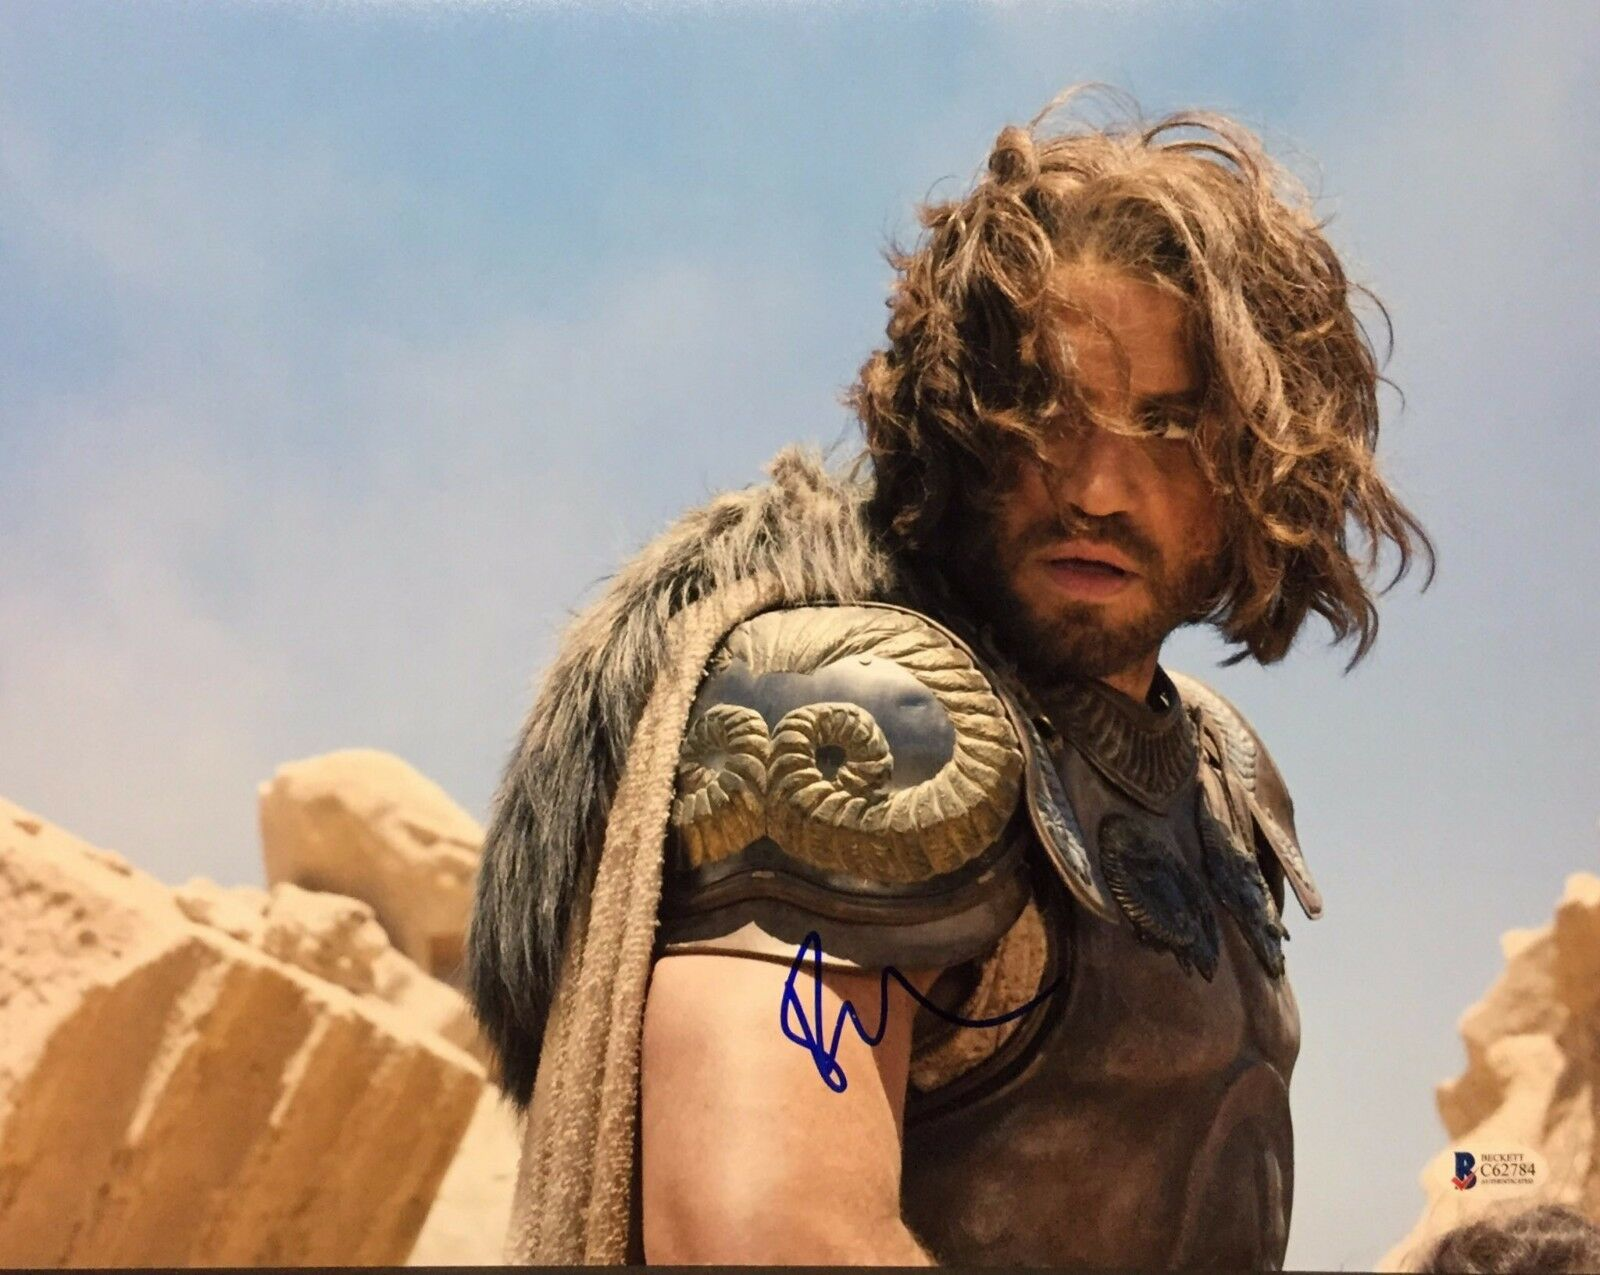 Edgar Ramirez Signed Wrath Of The Titans 11x14 Photo Beckett BAS C62784